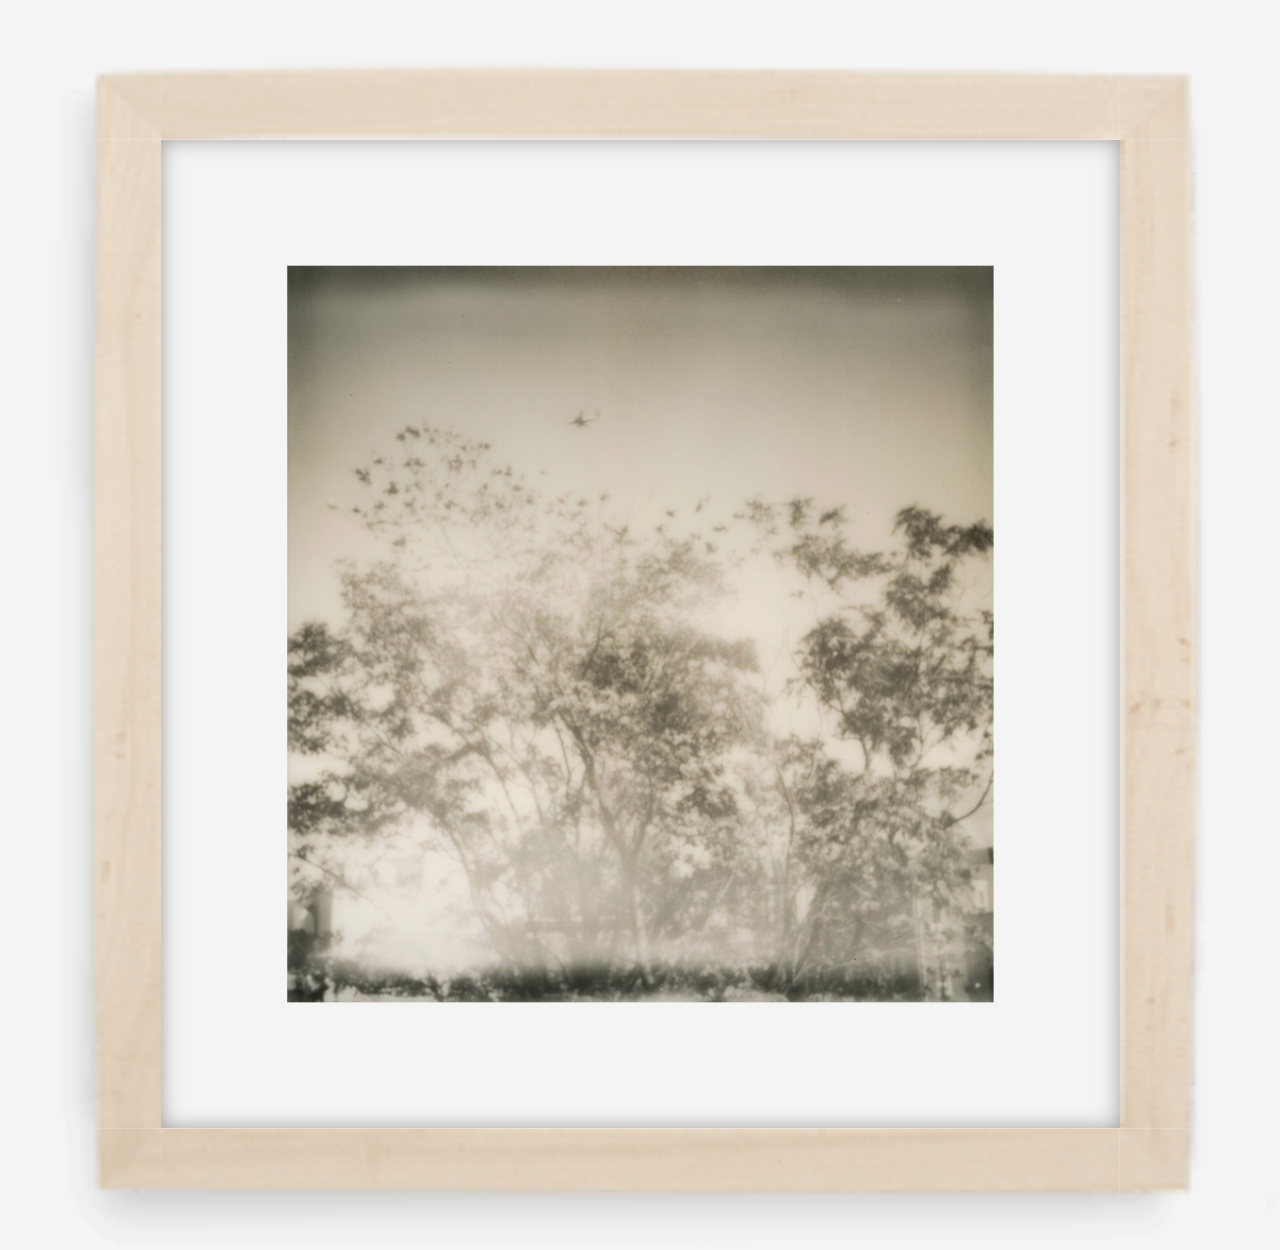 plane over trees - 5x5.2 / Gallery Natural / With Mat